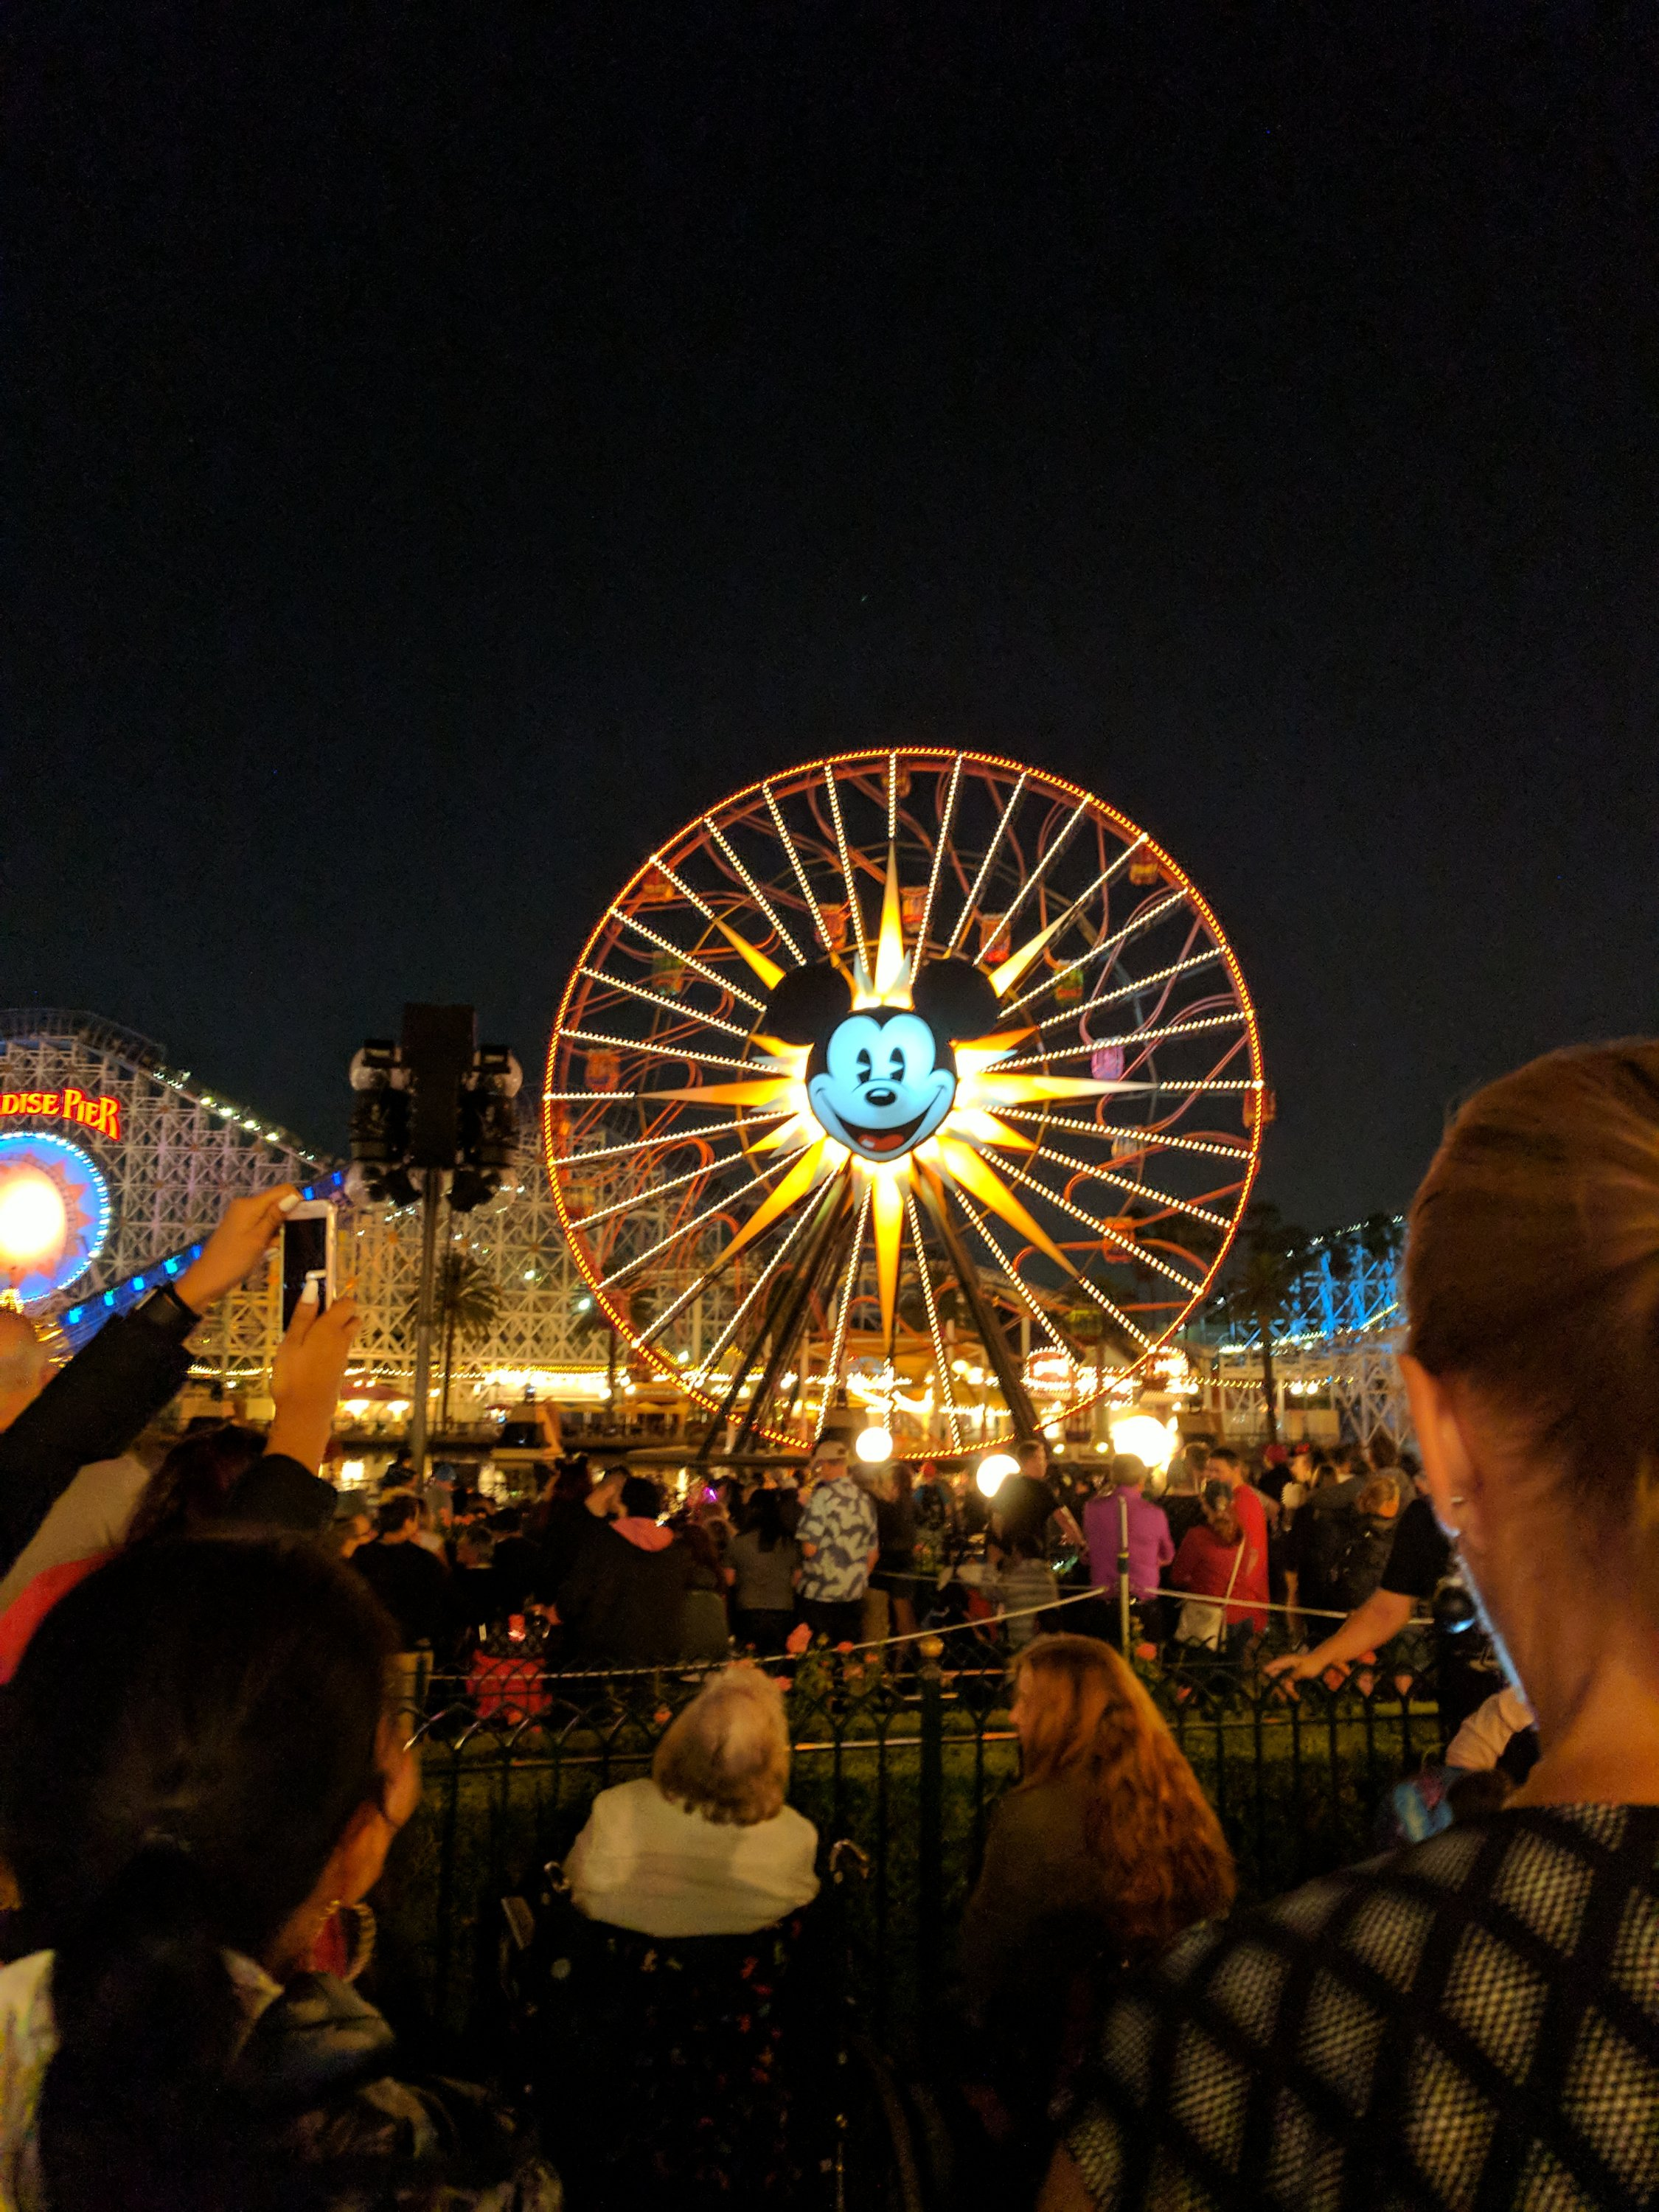 Micky Ferris Wheel at Night, Disneyland